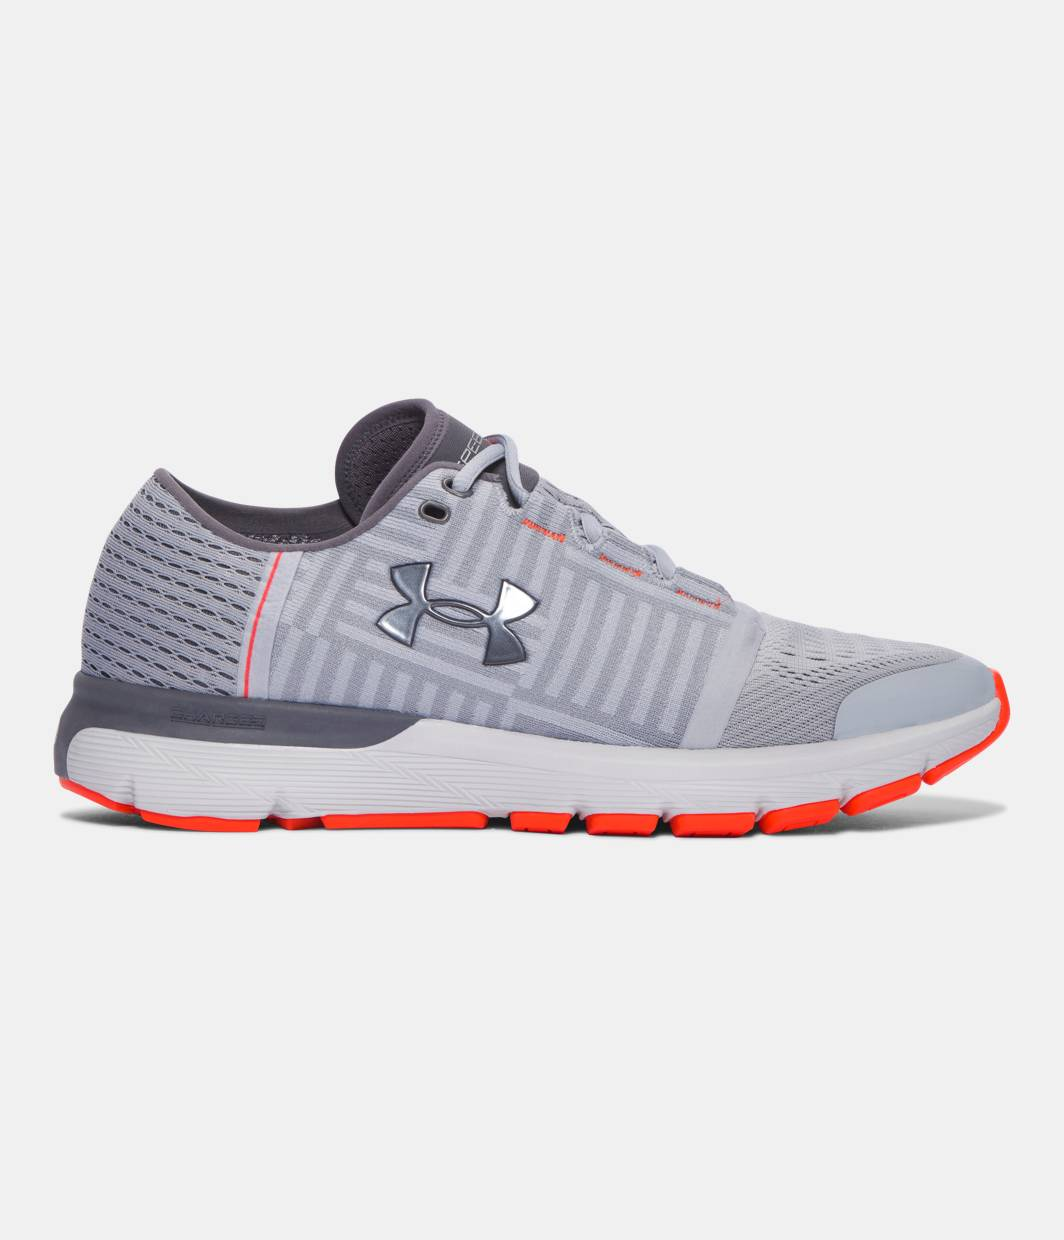 Neon Under Armour Shoes | Cheap Under Armour Shoes | Under Armour Retailers